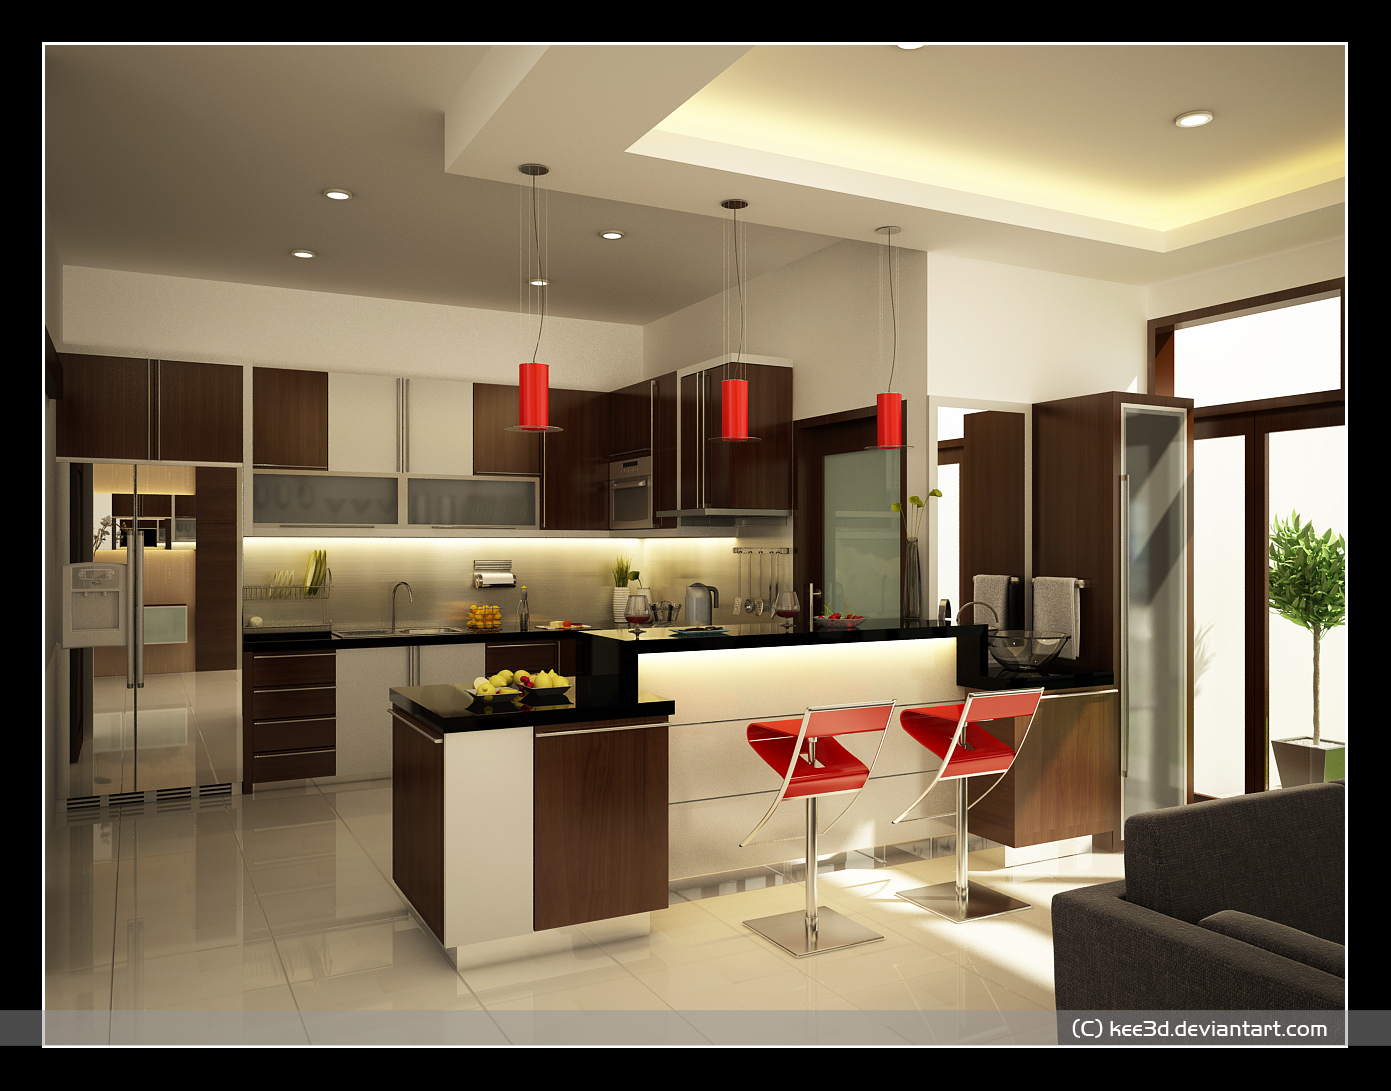 Kitchen Interior Design: Home Interior Design & Decor: Kitchen Design Ideas